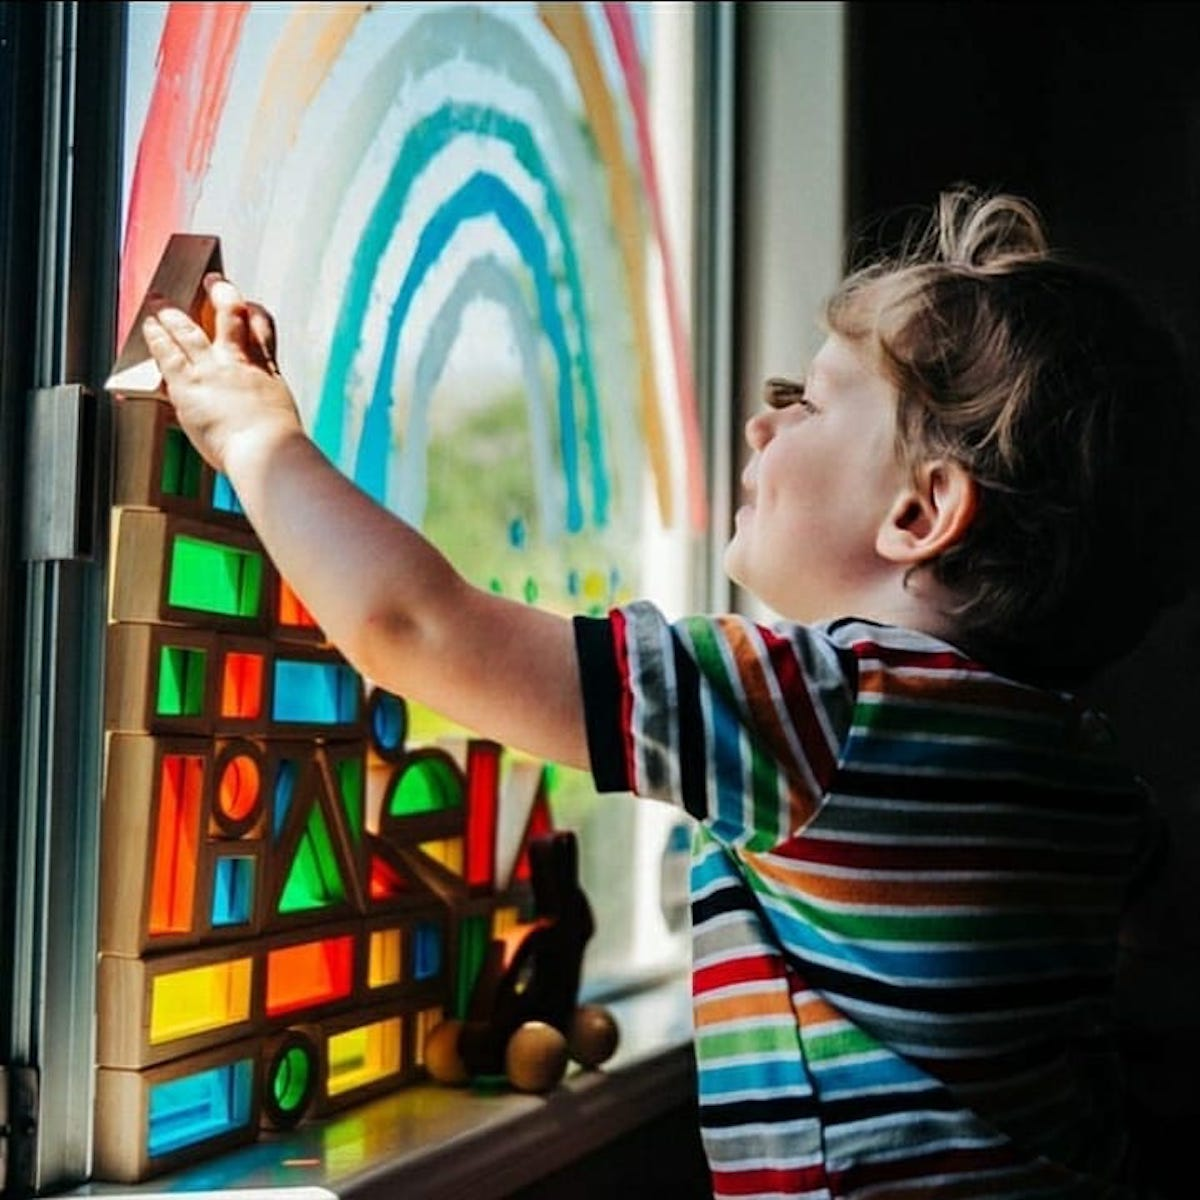 A child playing with Guidecraft Rainbow Blocks by a window